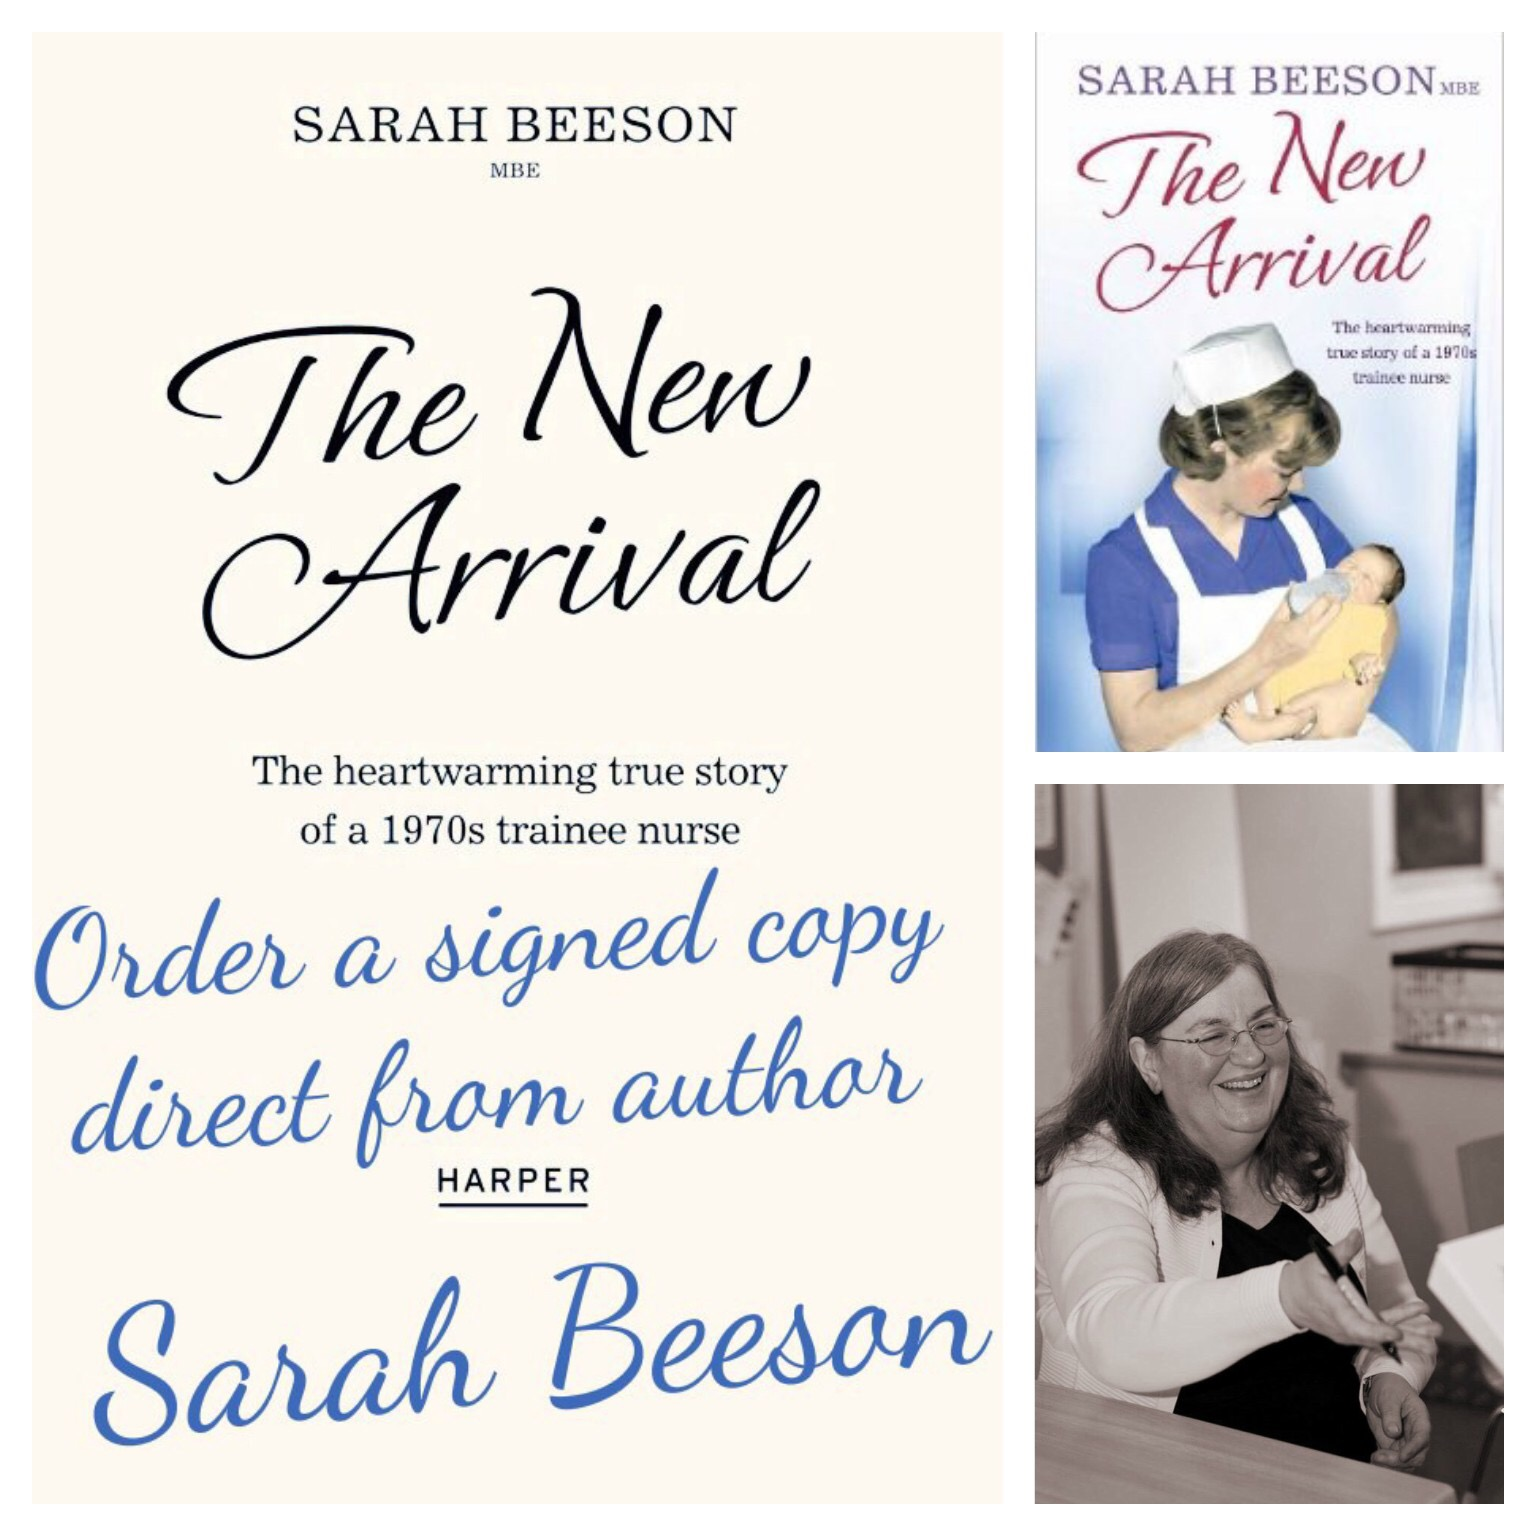 Signed copies of The New Arrival